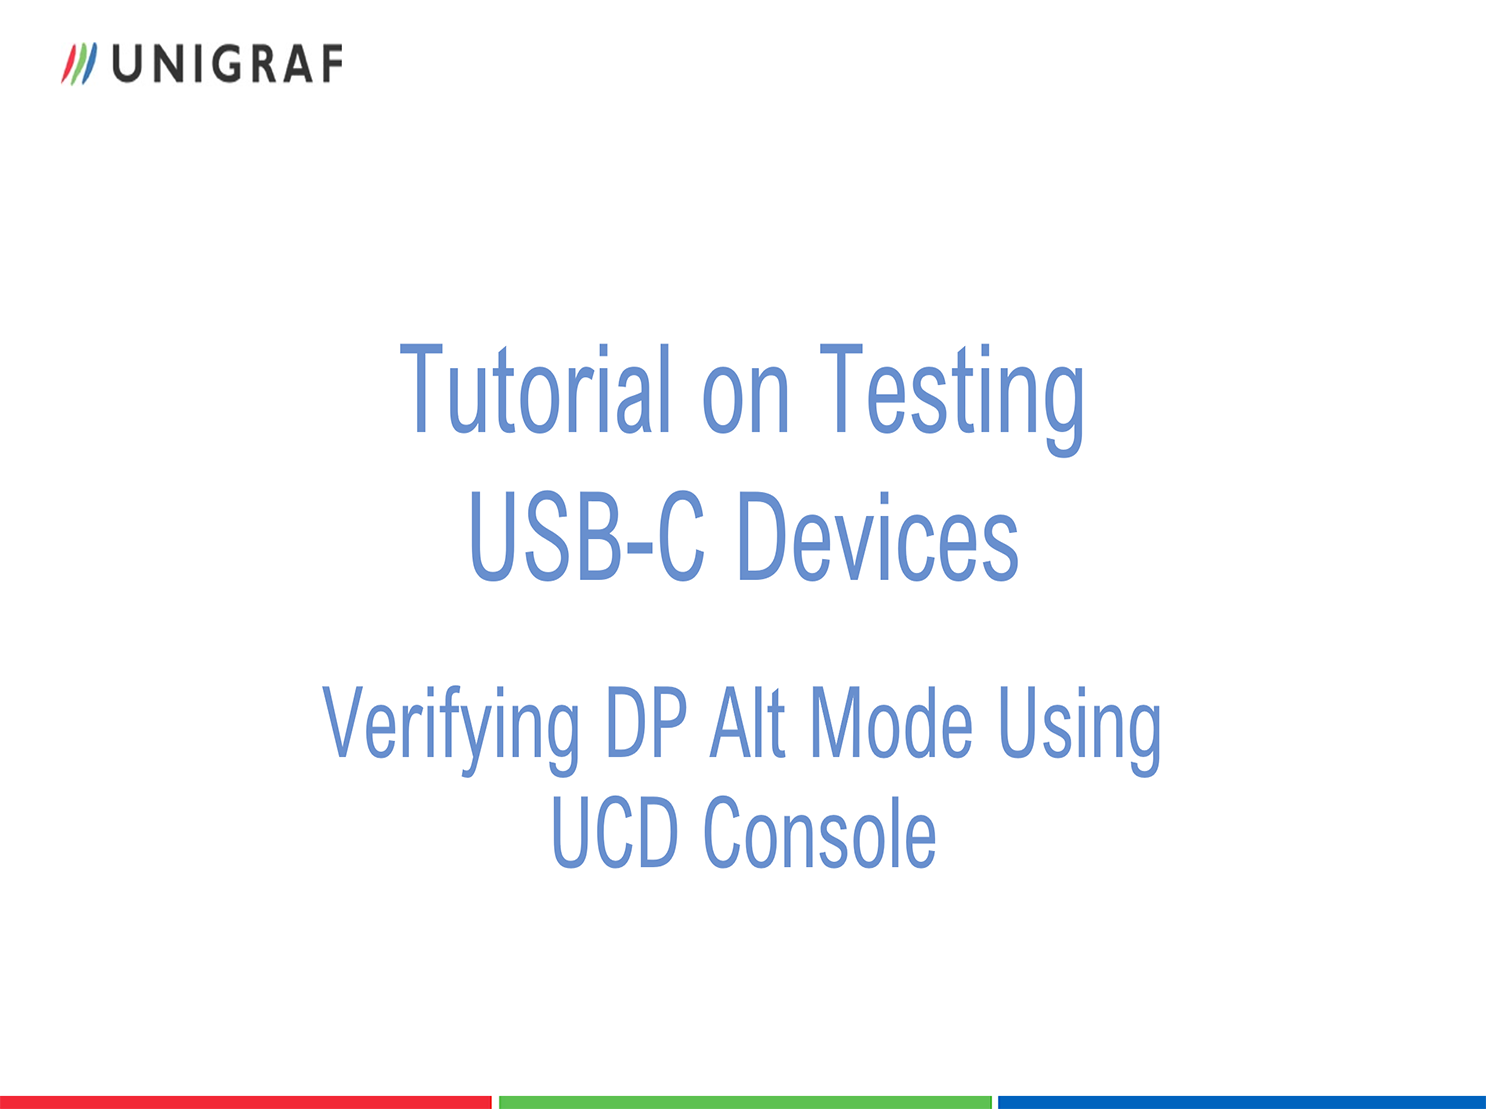 Tutorial on Testing USB-C Devices with UCD-424 - Verifying DP Alt Mode Using UCD Console